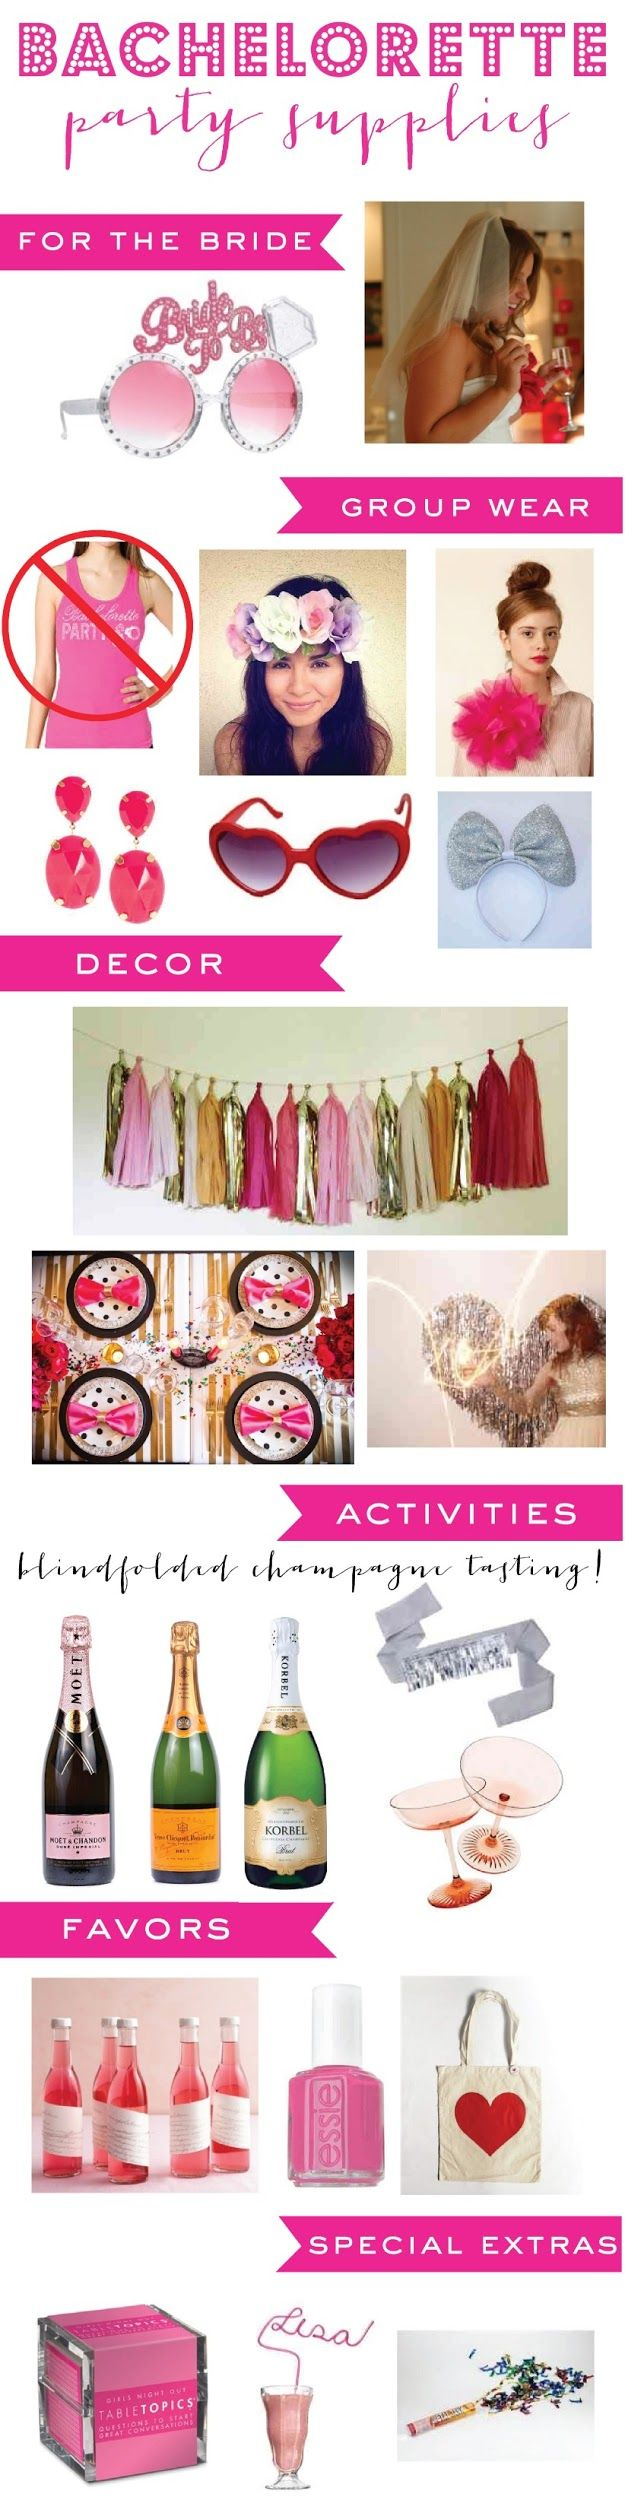 Pin by caitlin gillespie on bachelorette party themes for Bachelorette party decoration